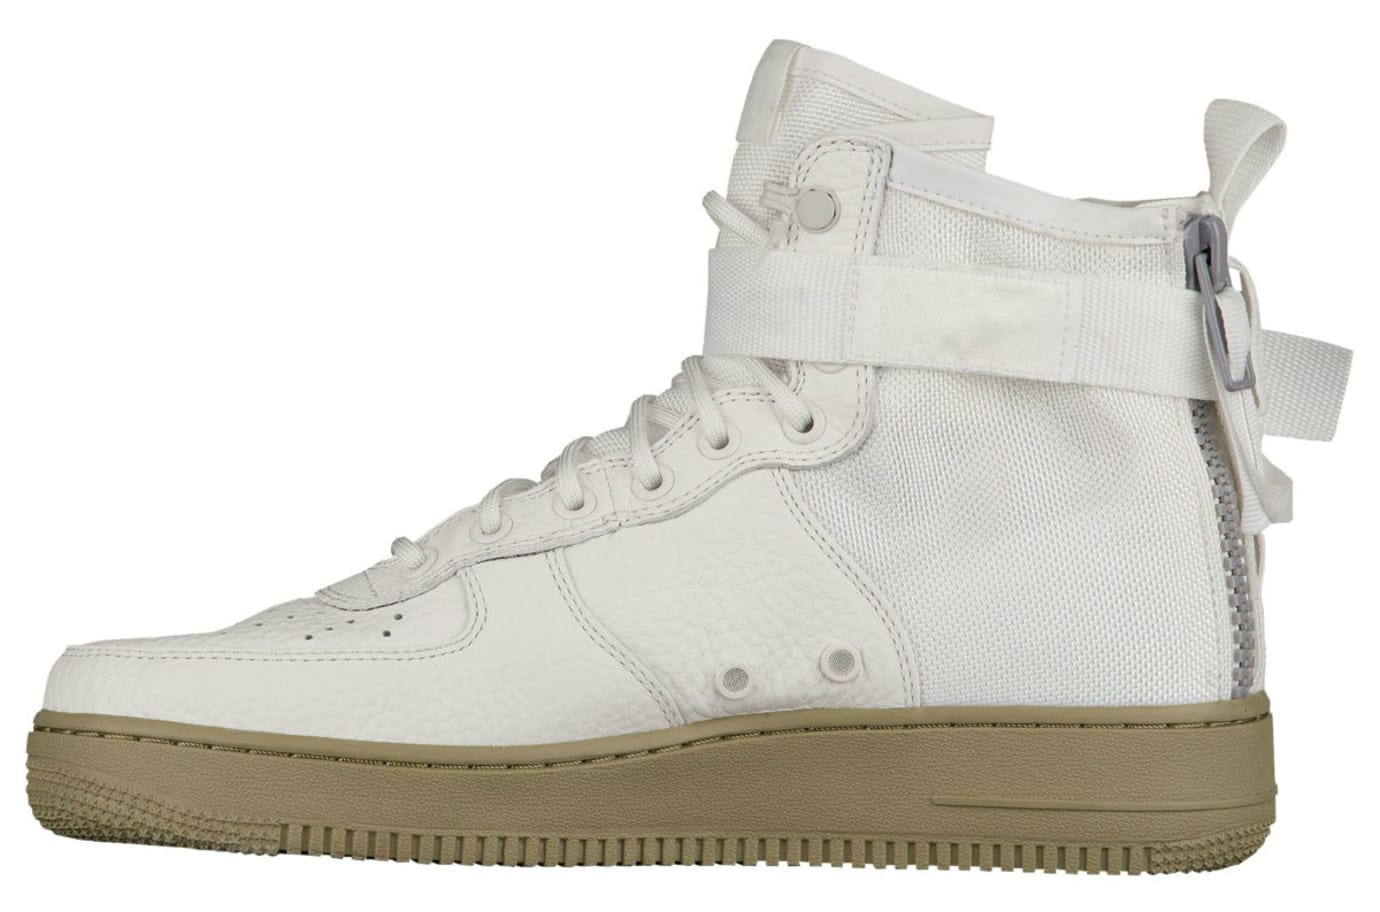 Nike SF Air Force 1 Mid Ivory Neutral Release Date Medial 917753-101